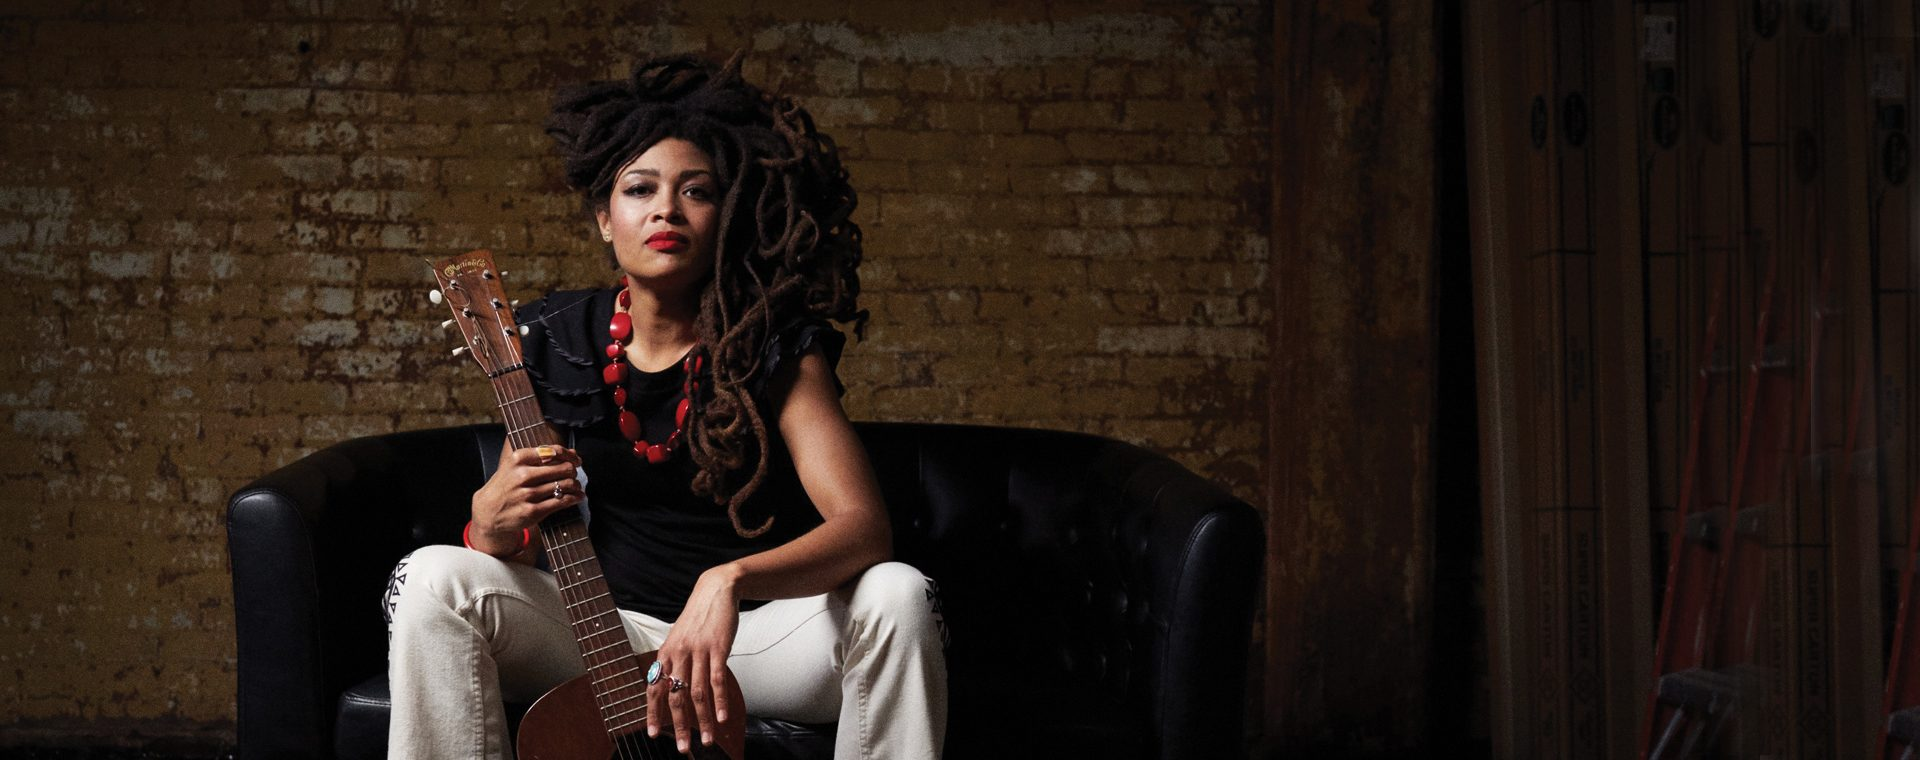 LATEST ISSUE <br><b>Valerie June</b></br>